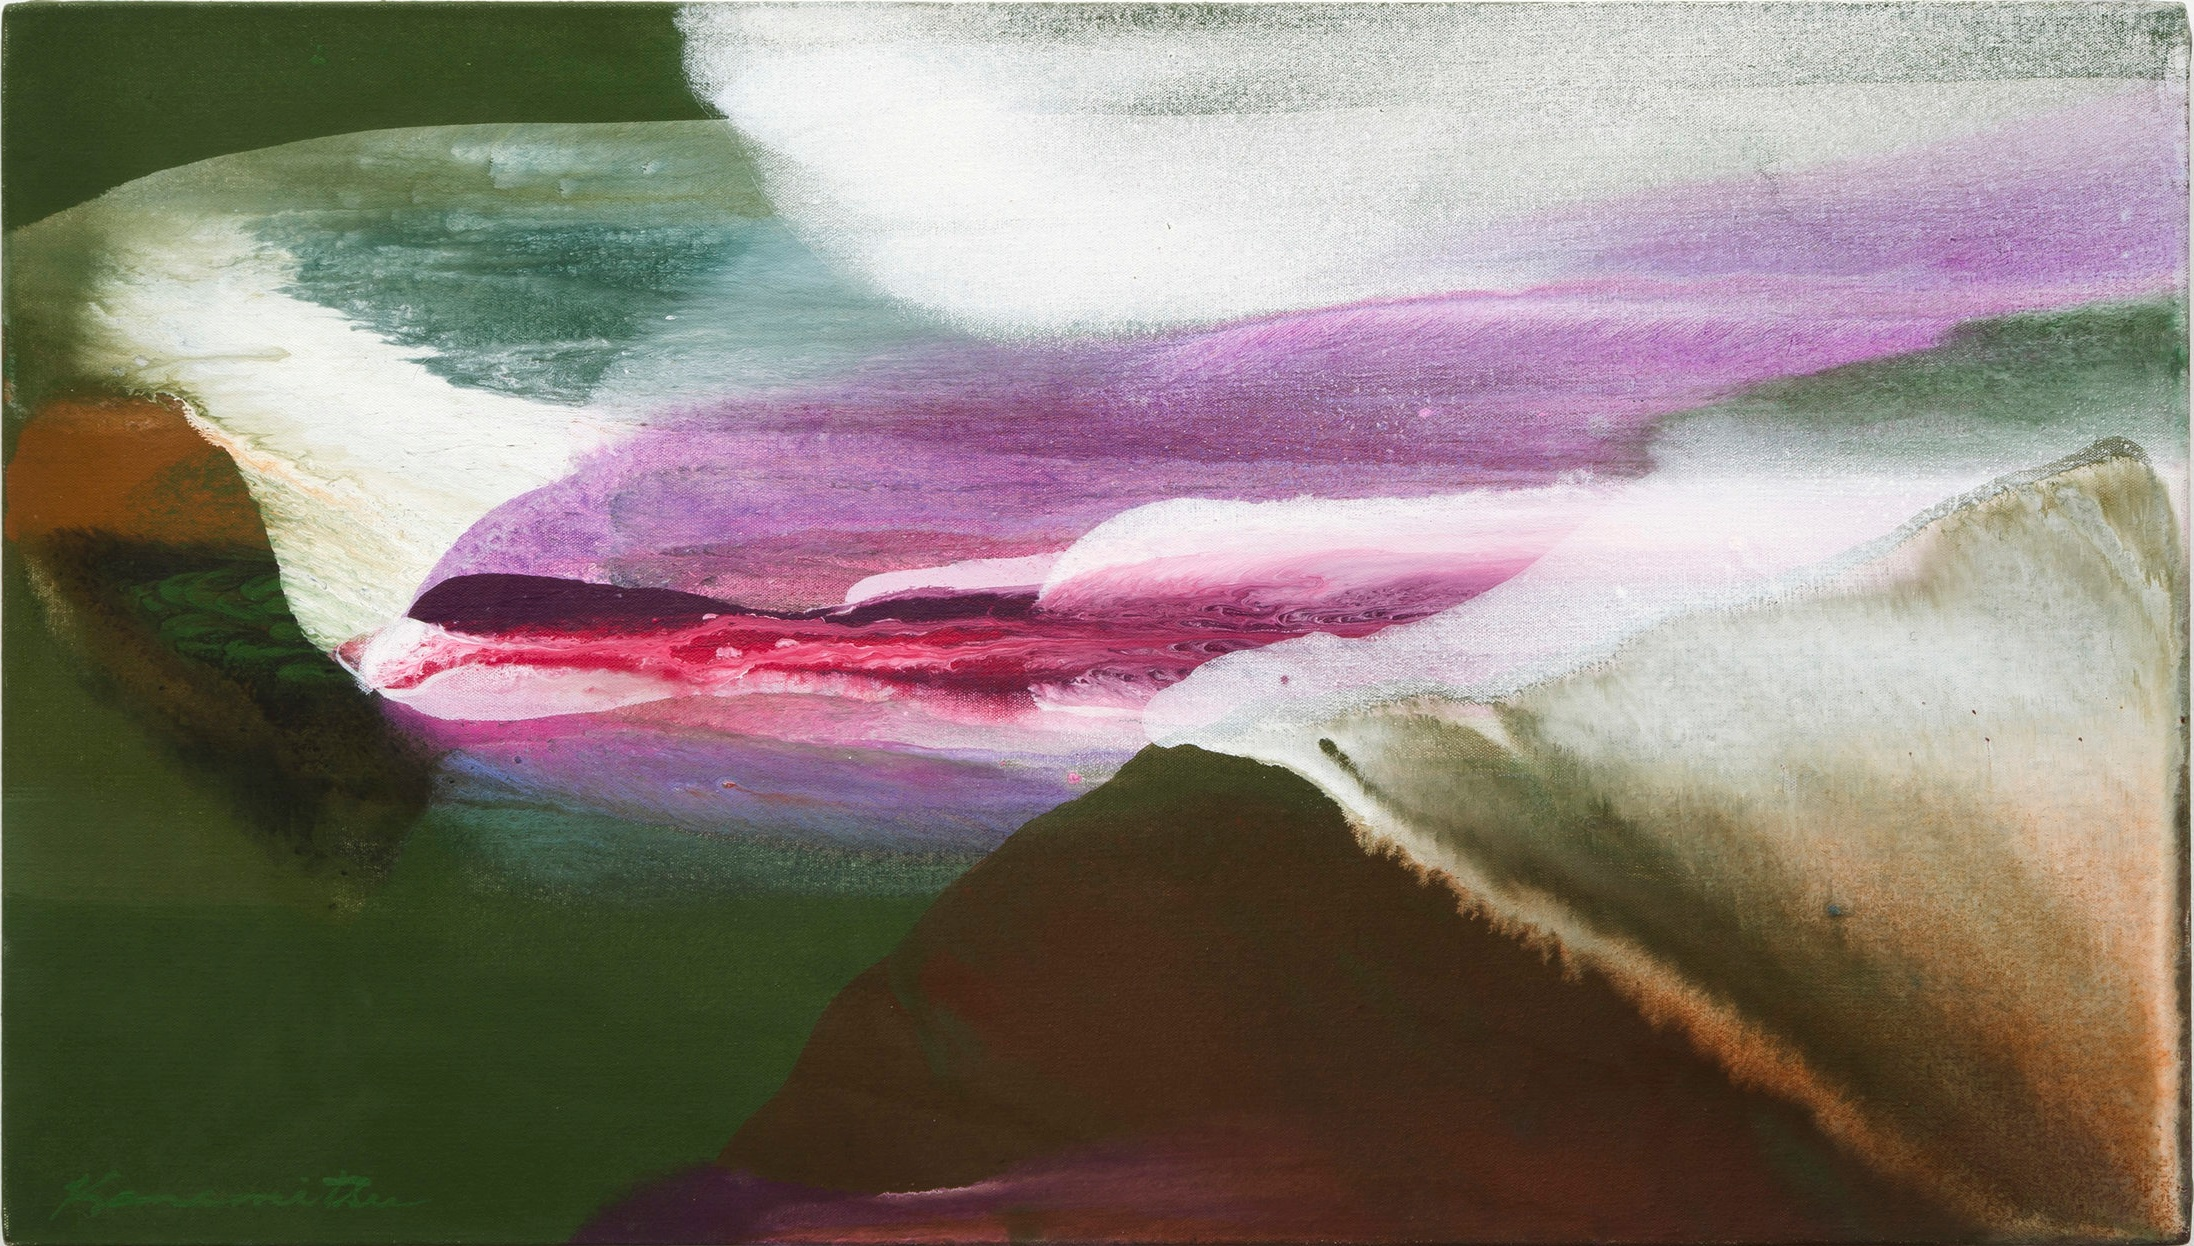 Spring 7PM , 1986 acrylic on canvas 18.25 x 32 inches; 46.4 x 18.3 centimeters